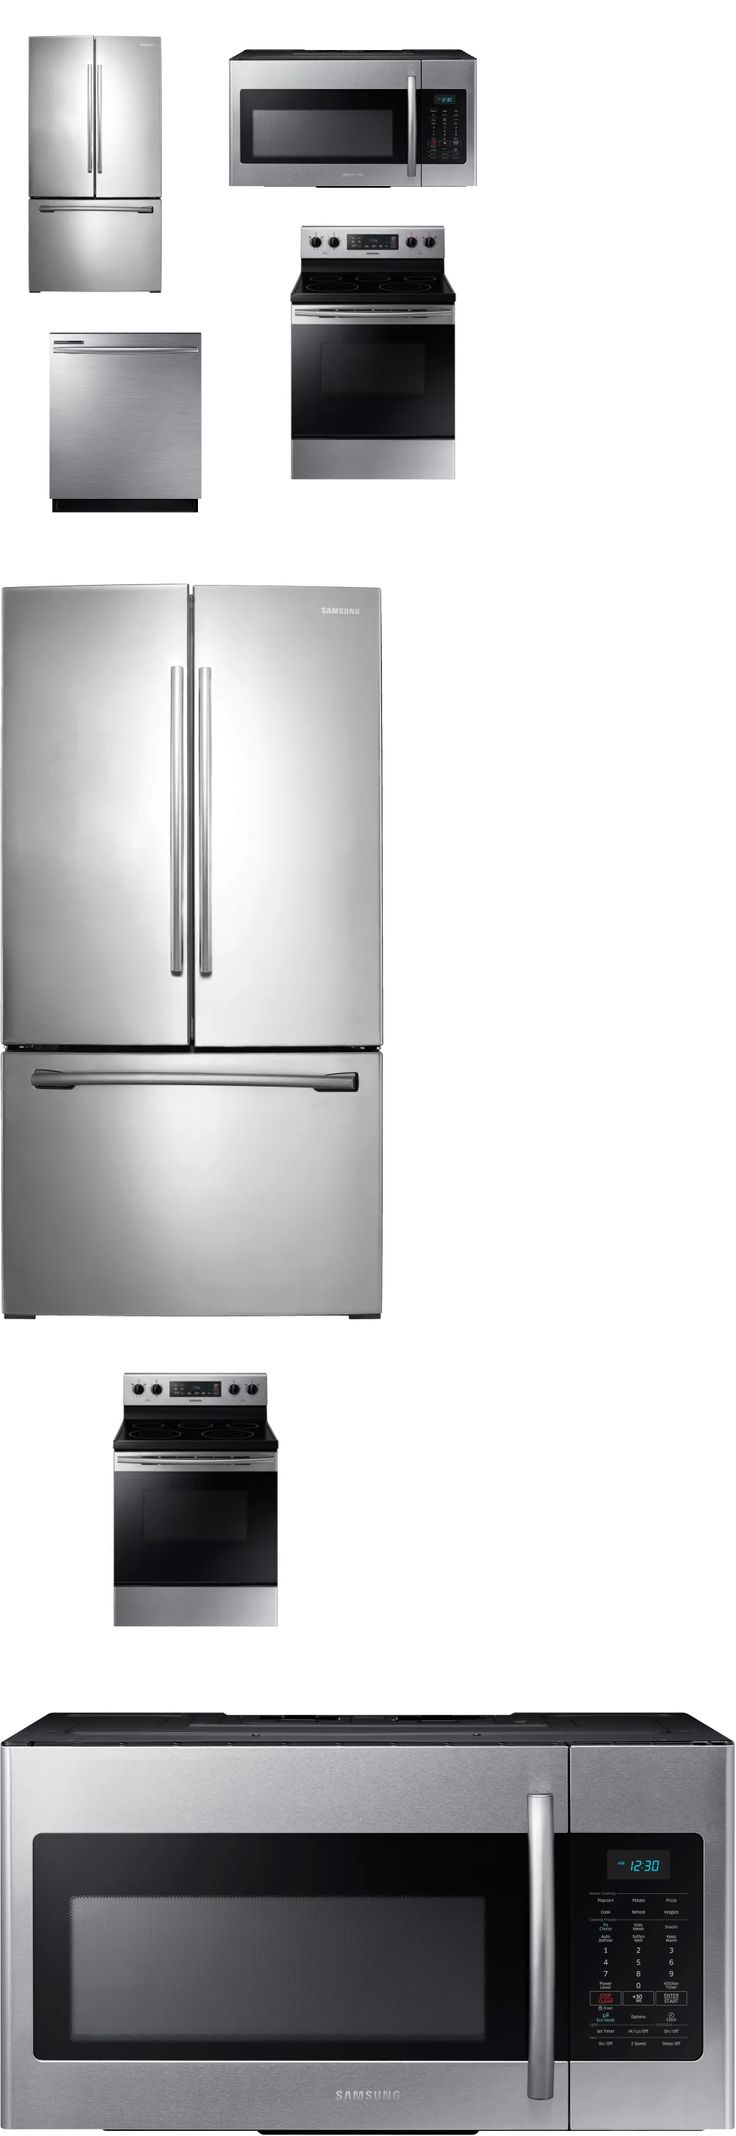 other major appliances 20715 samsung 4 kitchen appliance package stainless refrigerator range dishwasher deal - Kuechengeraet Pakete